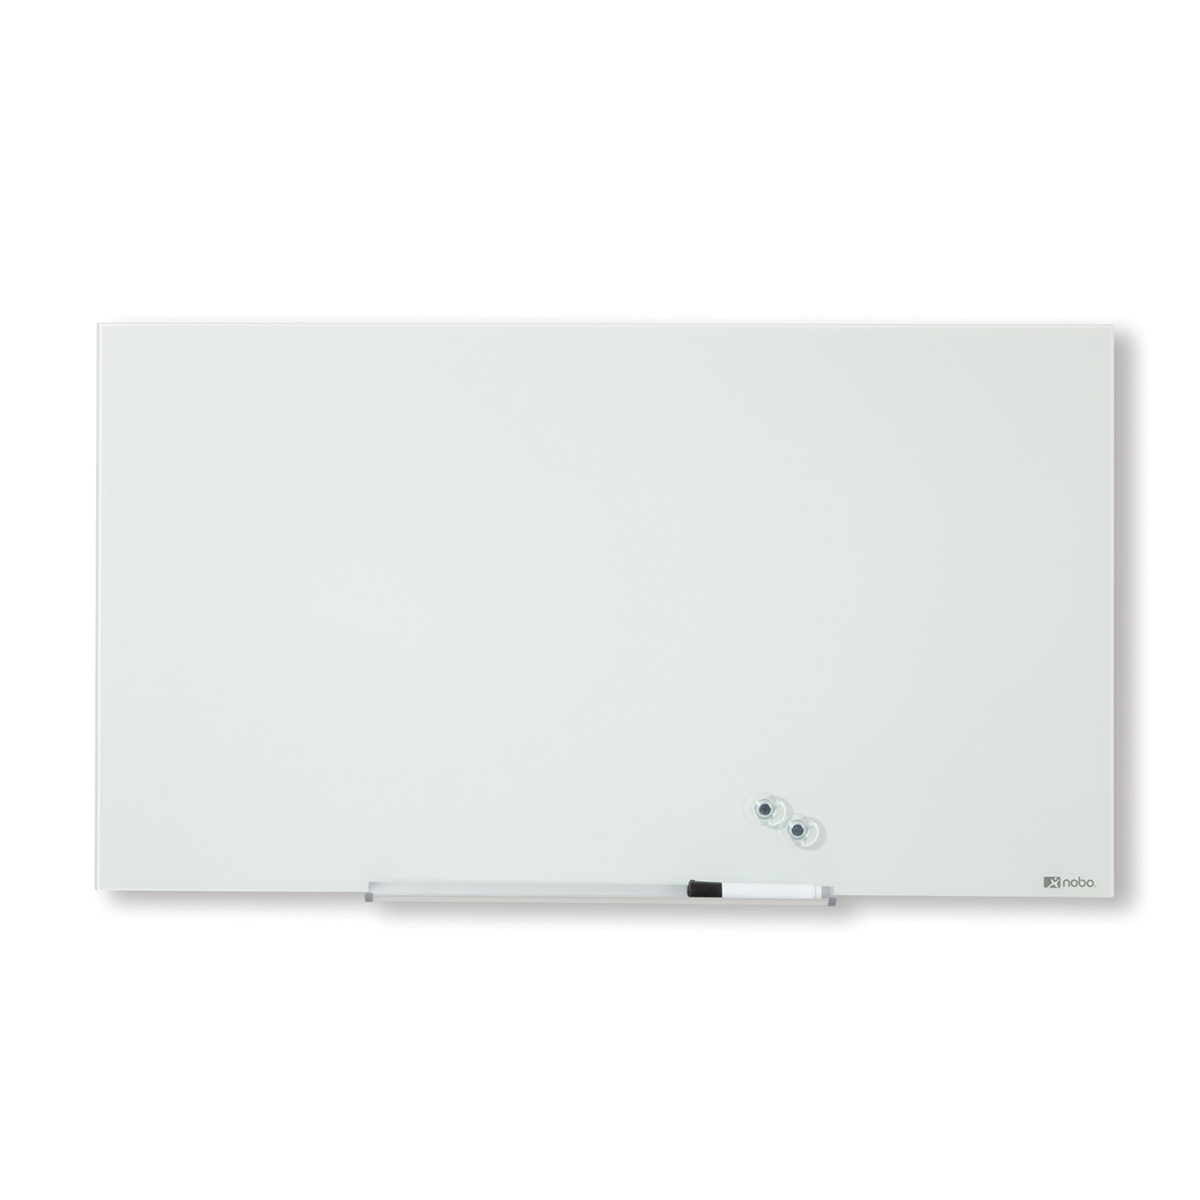 Nobo 1905177 Diamond Glass Whiteboard 1264 x 711mm